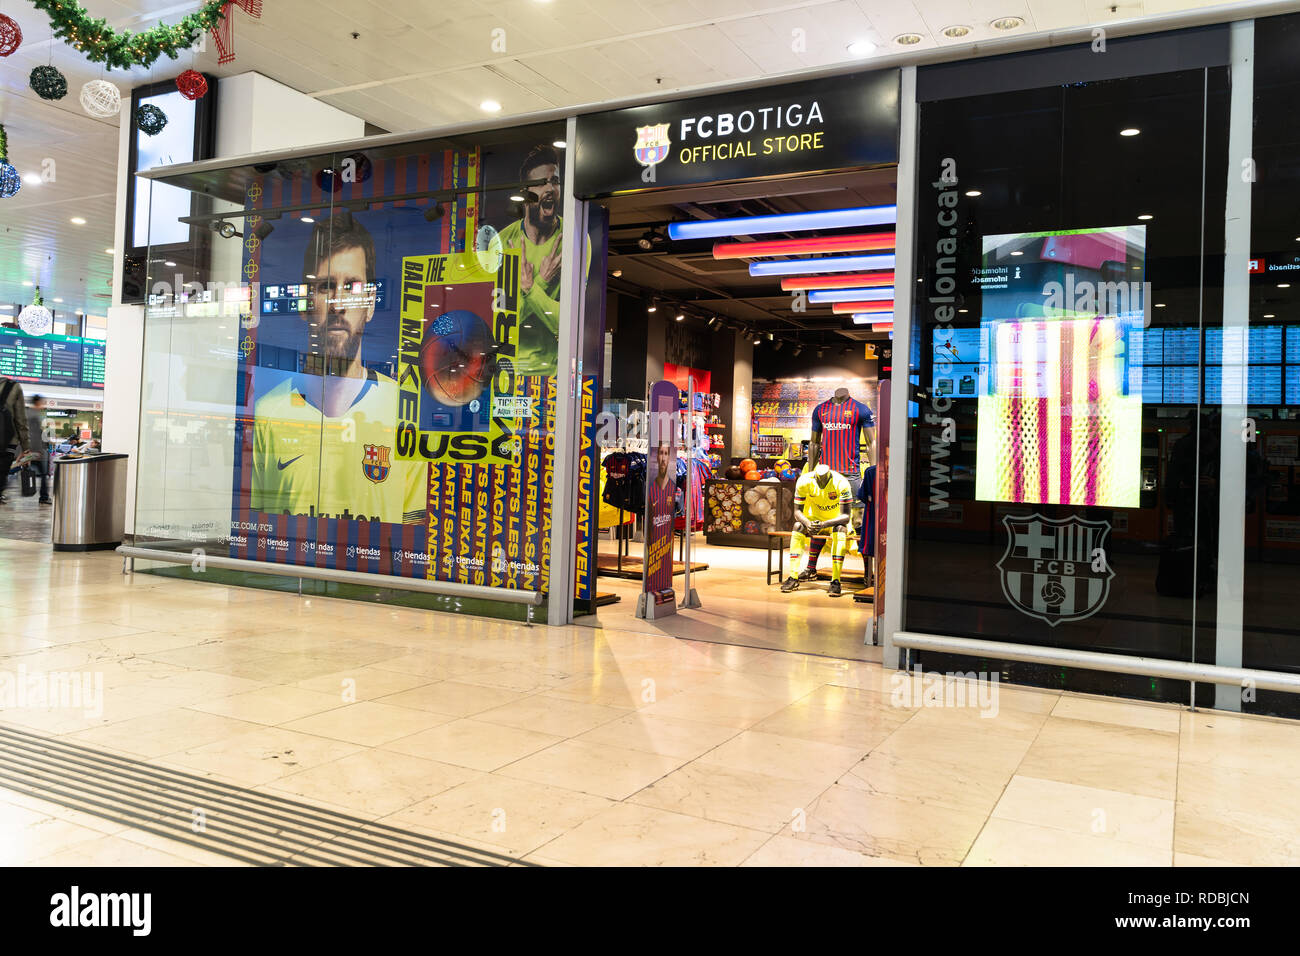 Entrance, facade to the fc botiga store of the fc barcelona footbal team with a poster by Lionel Messi in the shop window. Logo fc barcelona, Spain - Stock Image